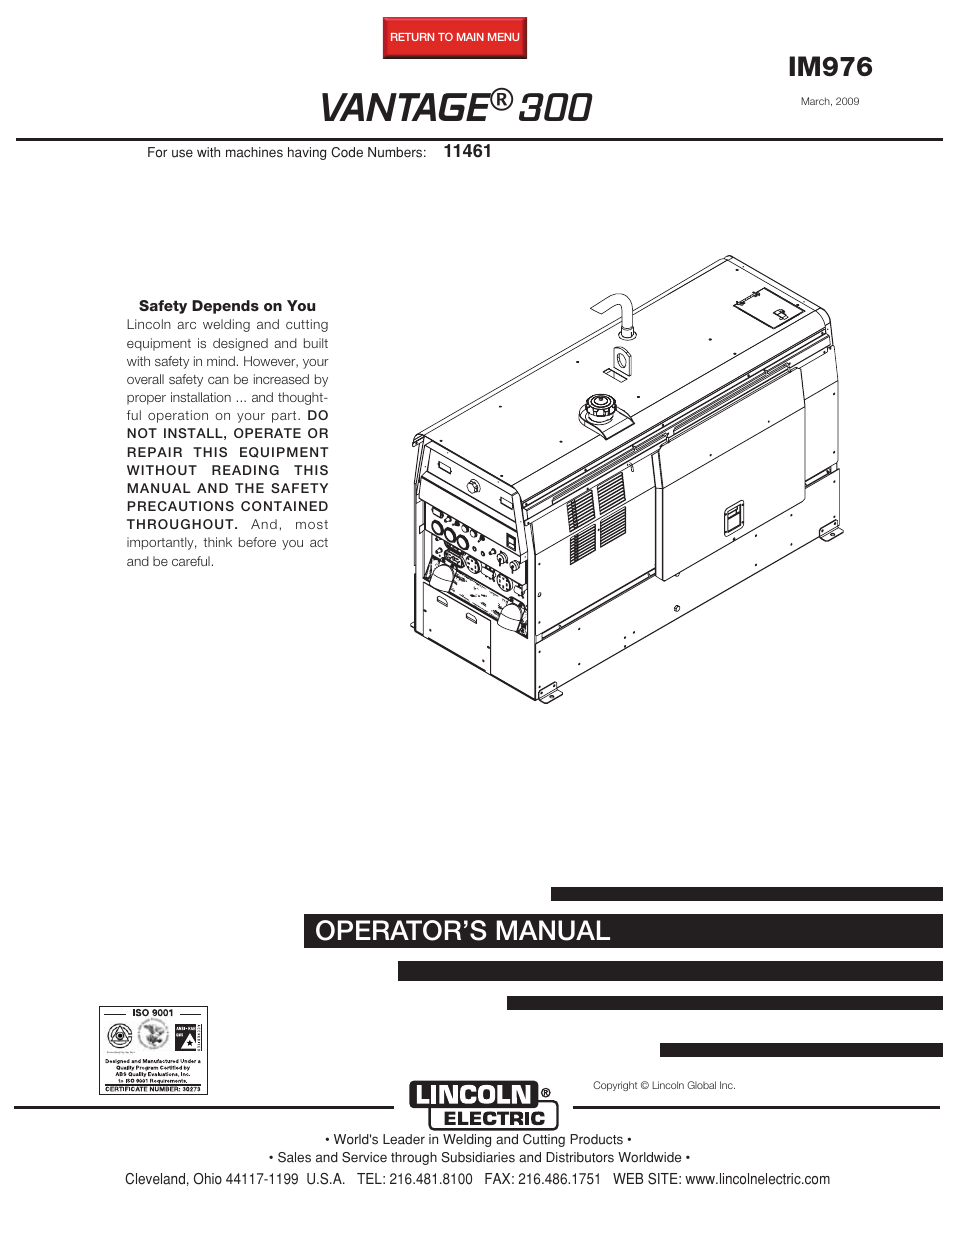 lincoln electric im976 vantage 300 page1 lincoln electric im976 vantage 300 user manual 54 pages